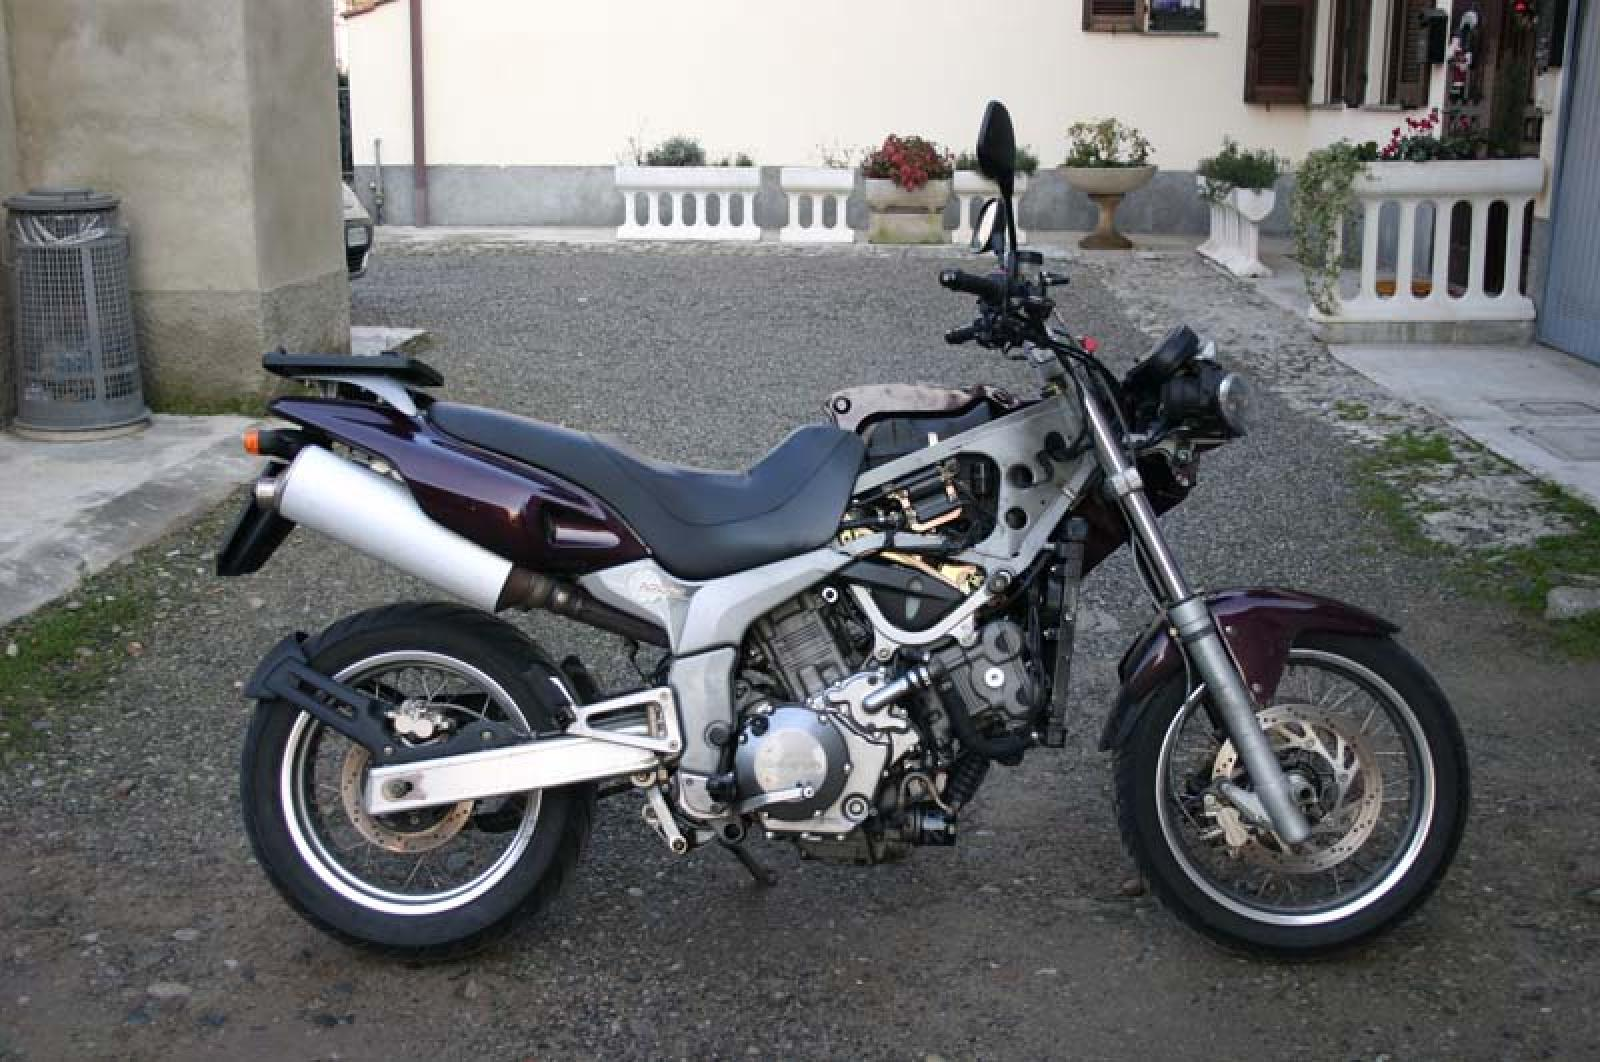 Cagiva Navigator 1000 2002 images #162854